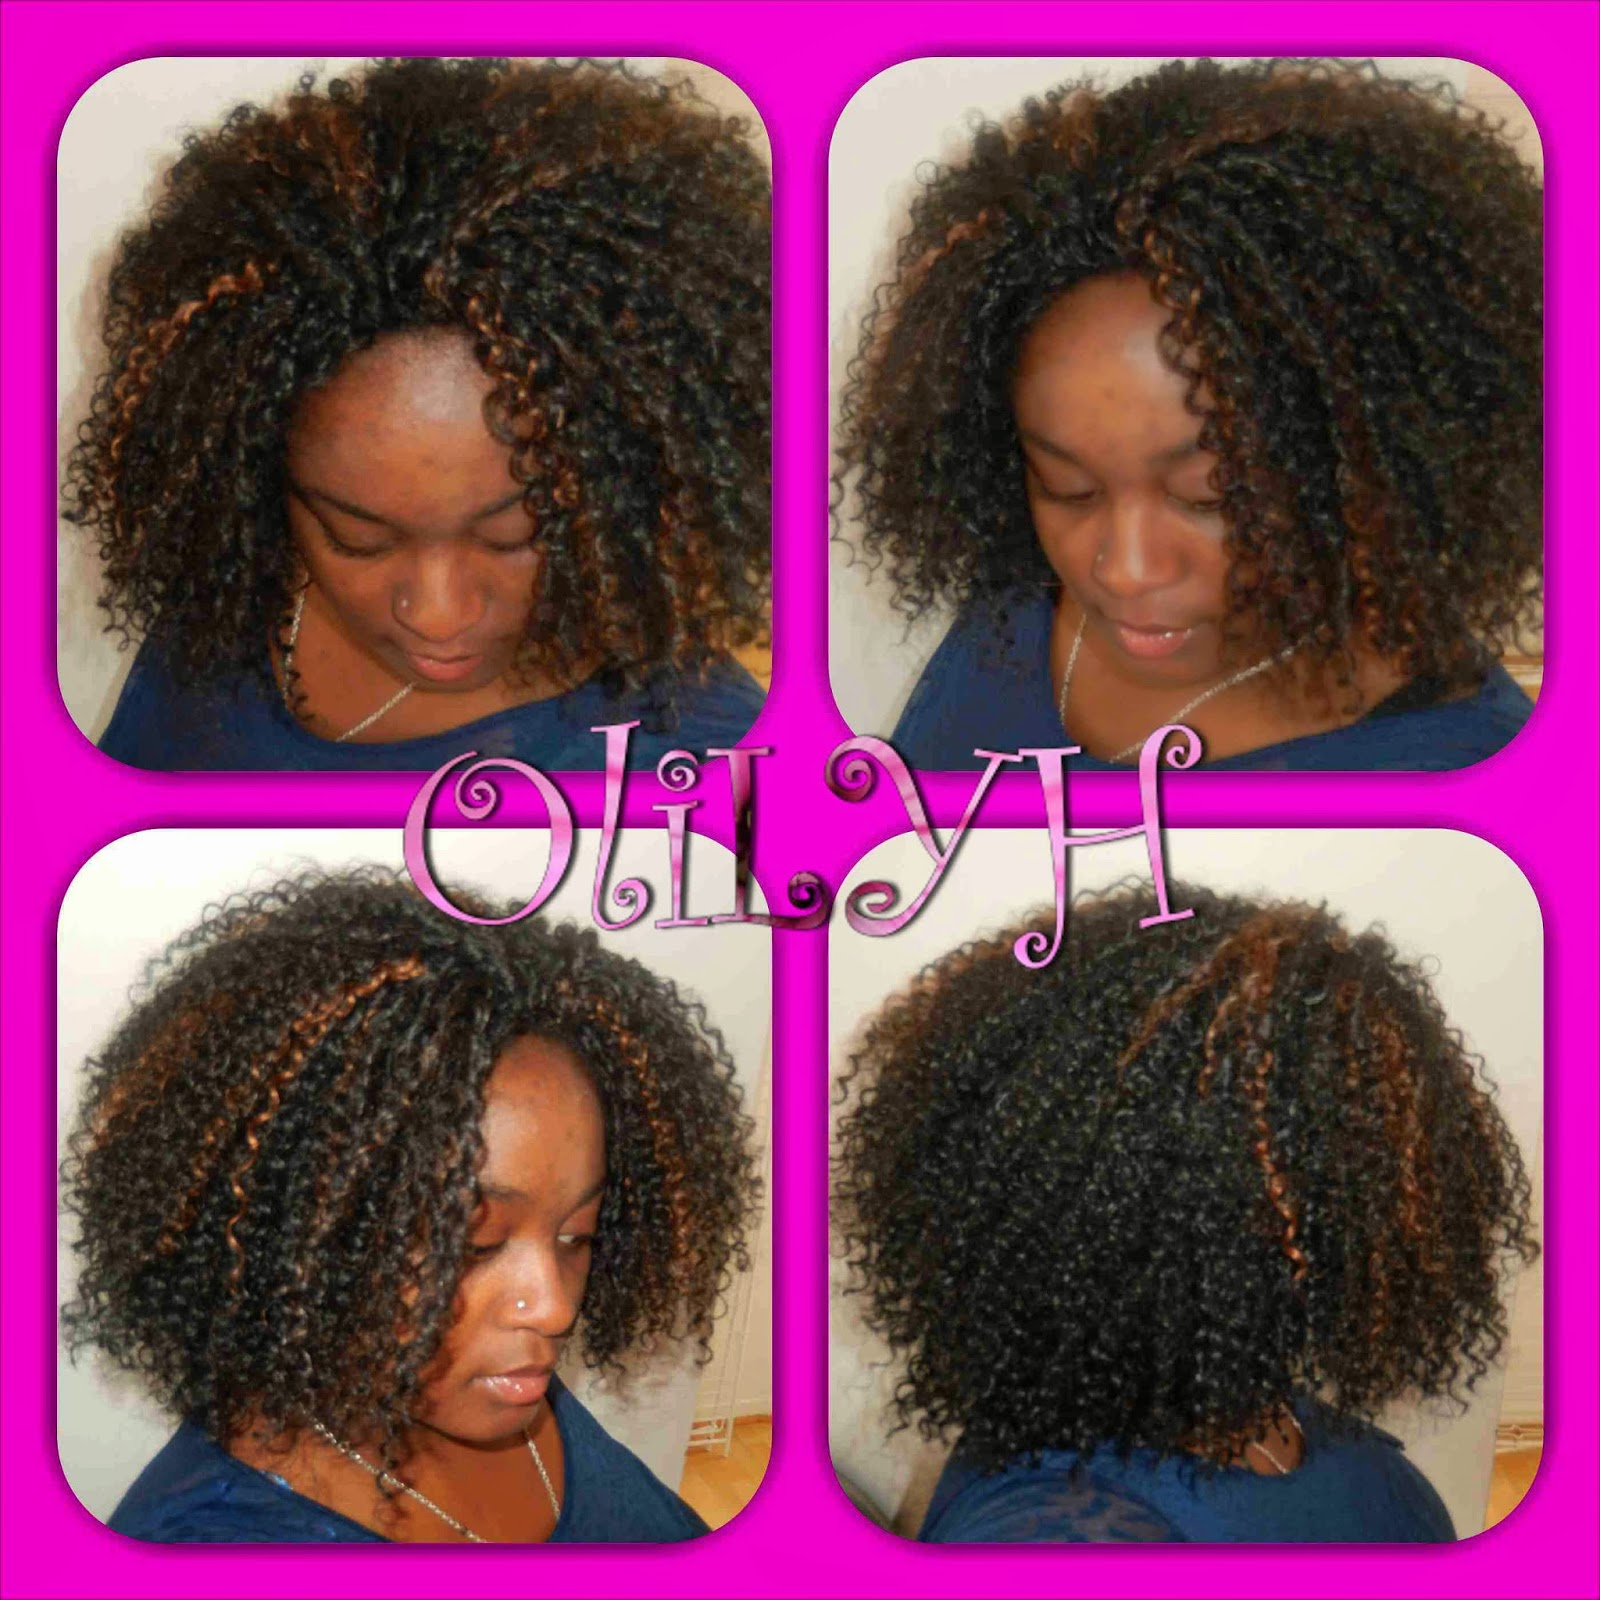 Crochet Braids La : ... Loves Your Hair: La perruque crochet braids (crochet braids wig